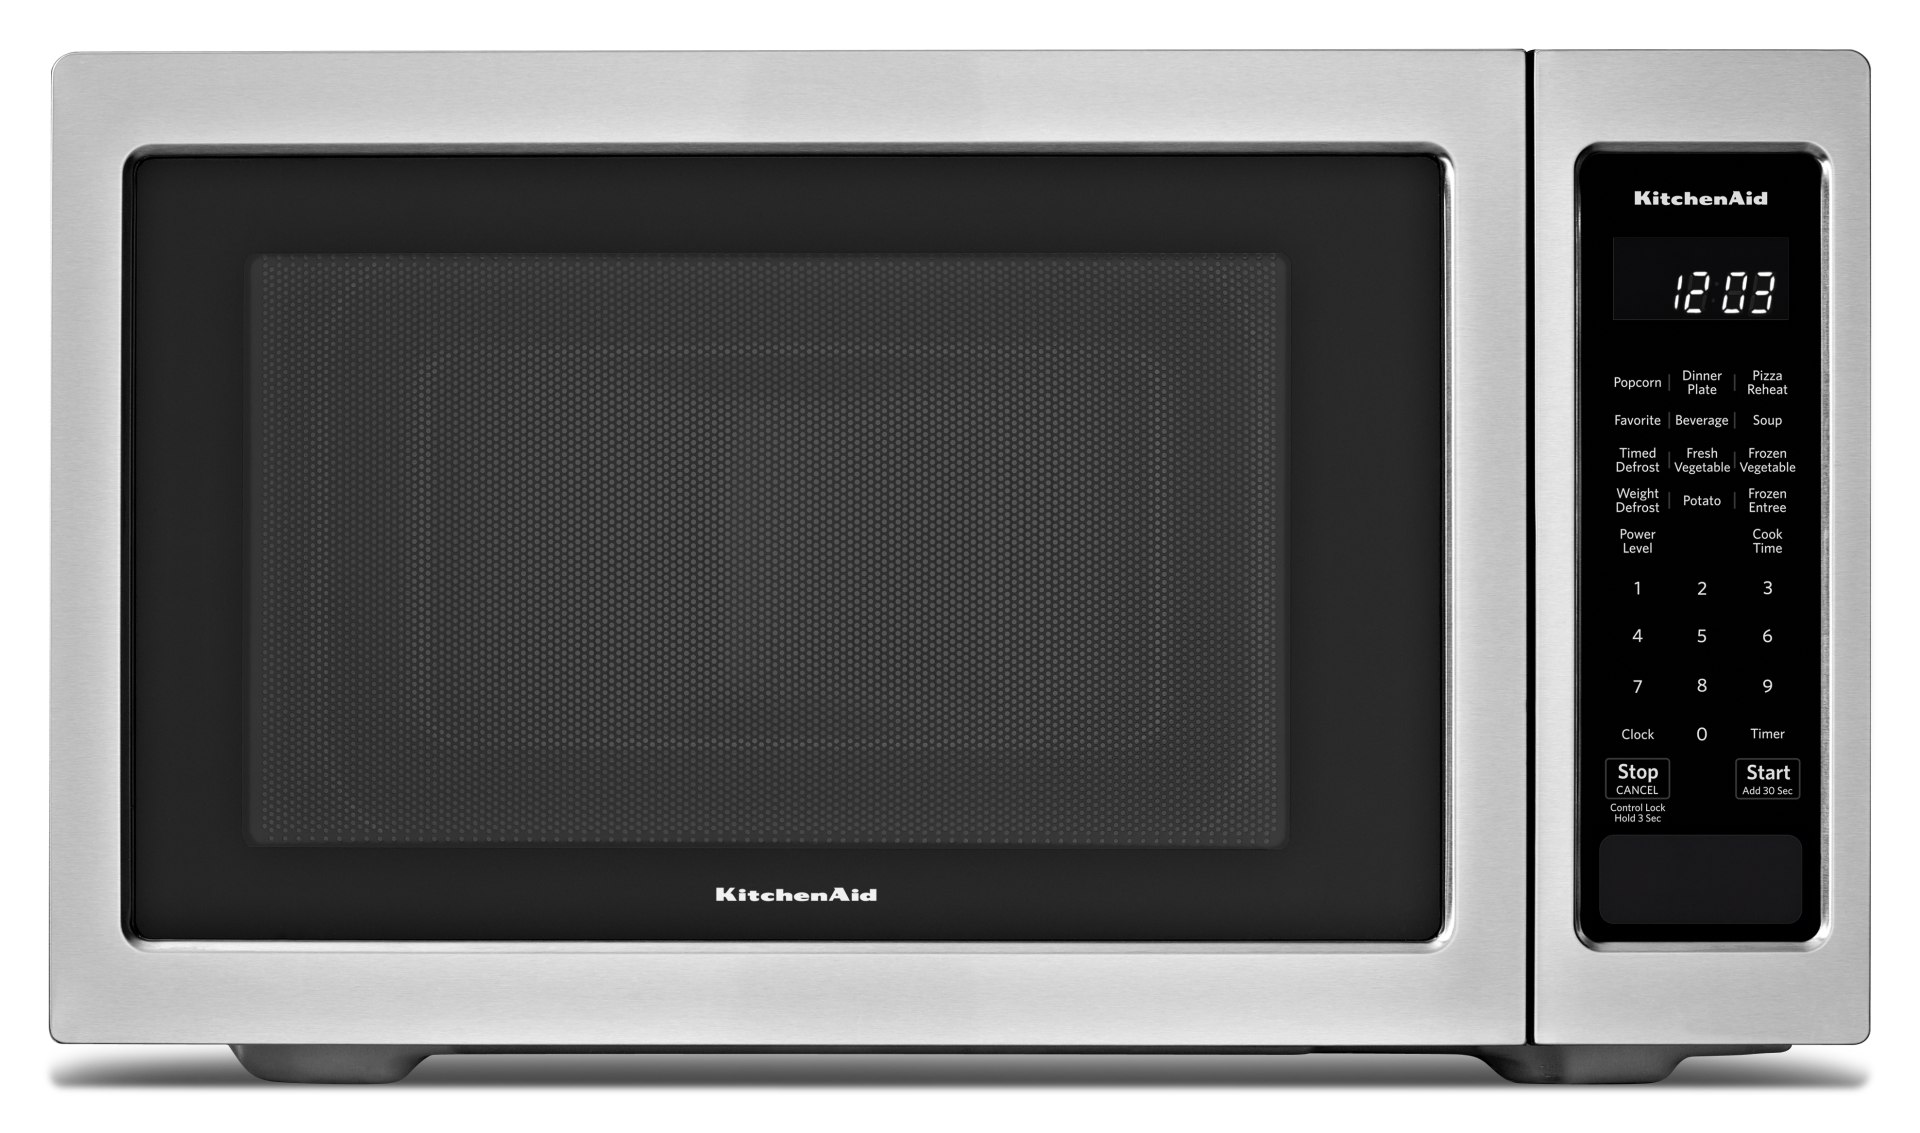 kitchenaid 1 6 cu ft countertop microwave oven with 9 quick touch cycles including six sensor cycles timed defrost